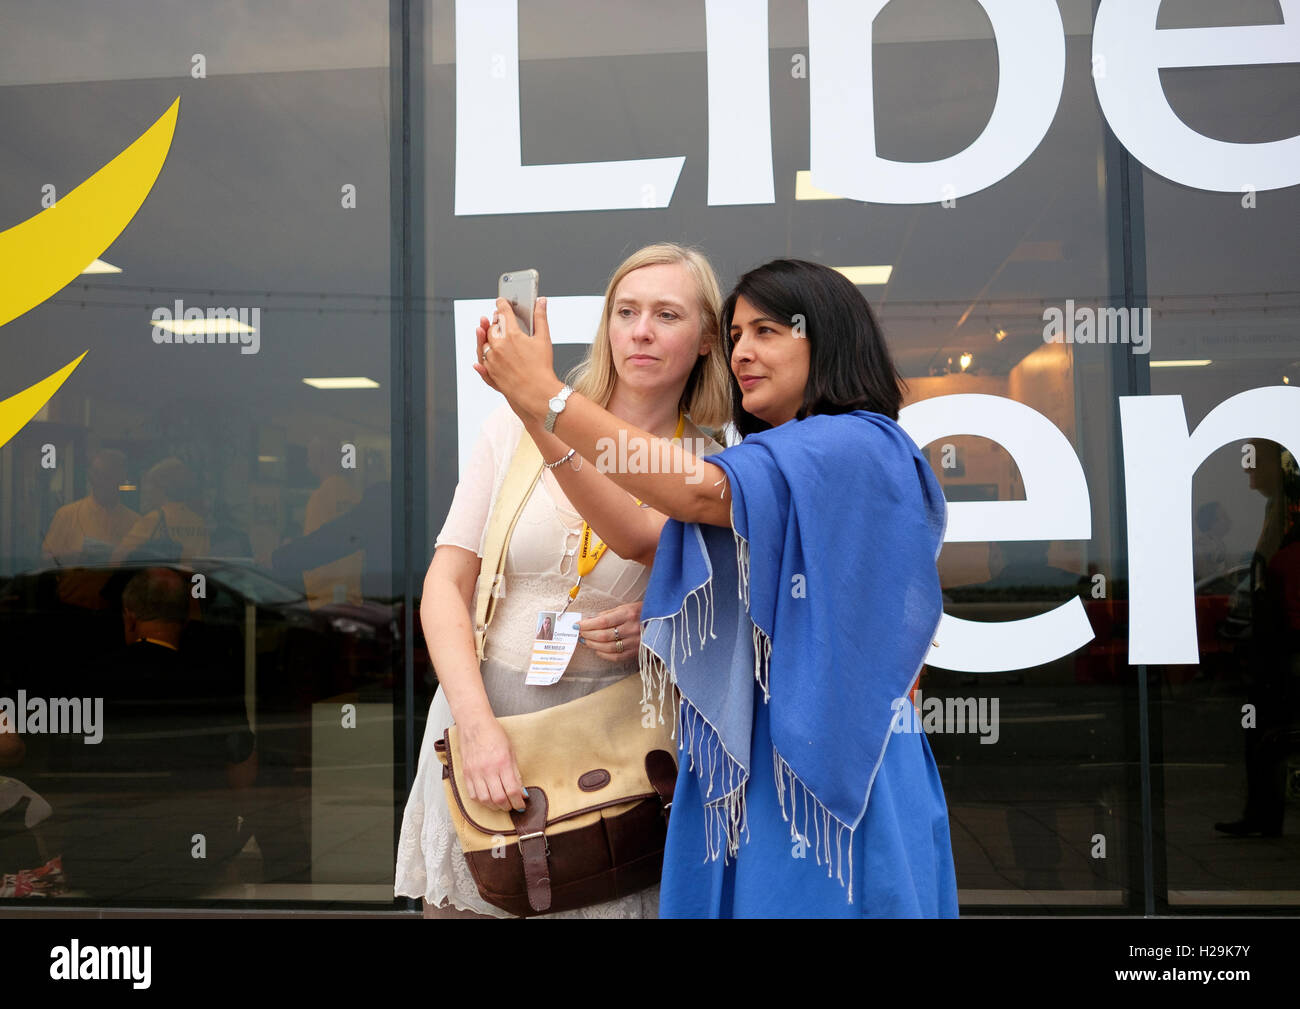 Delegates at the Liberal Democrats party conference in Brighton 2016 taking a selfie in front of the party logo. - Stock Image